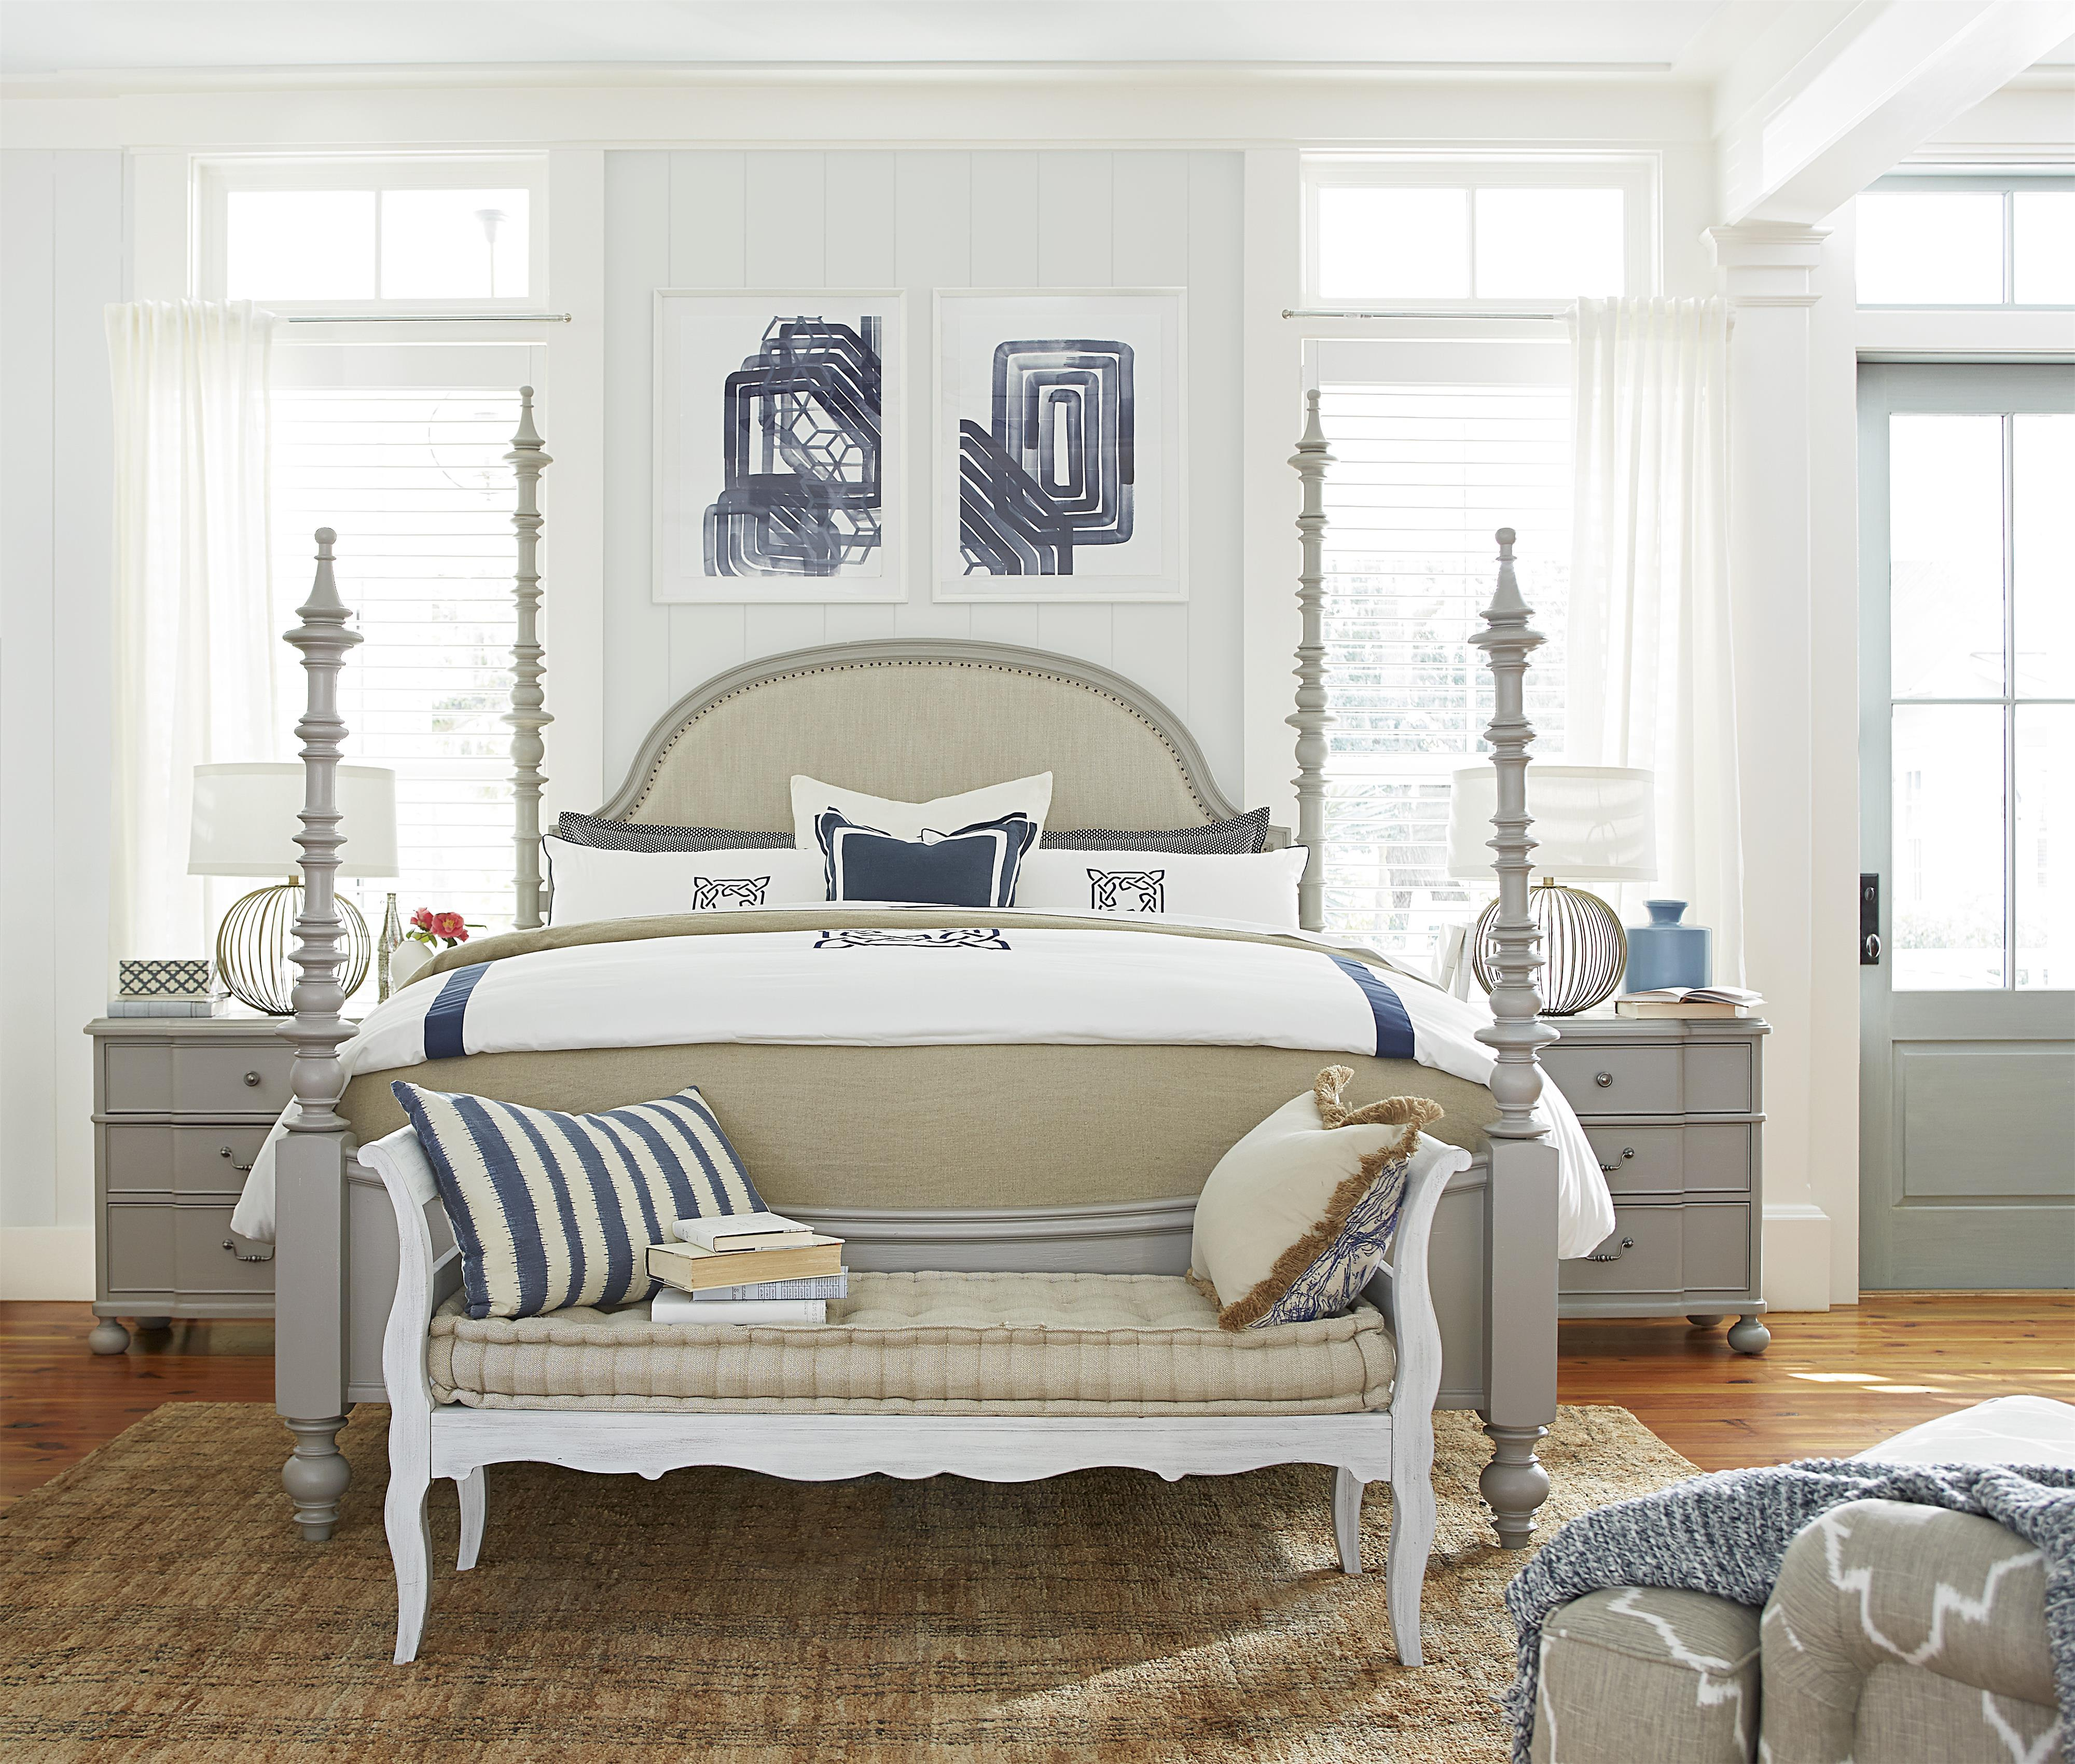 Paula Deen by Universal Dogwood California King Bedroom Group - Item Number: 599 CK Bedroom Group 1